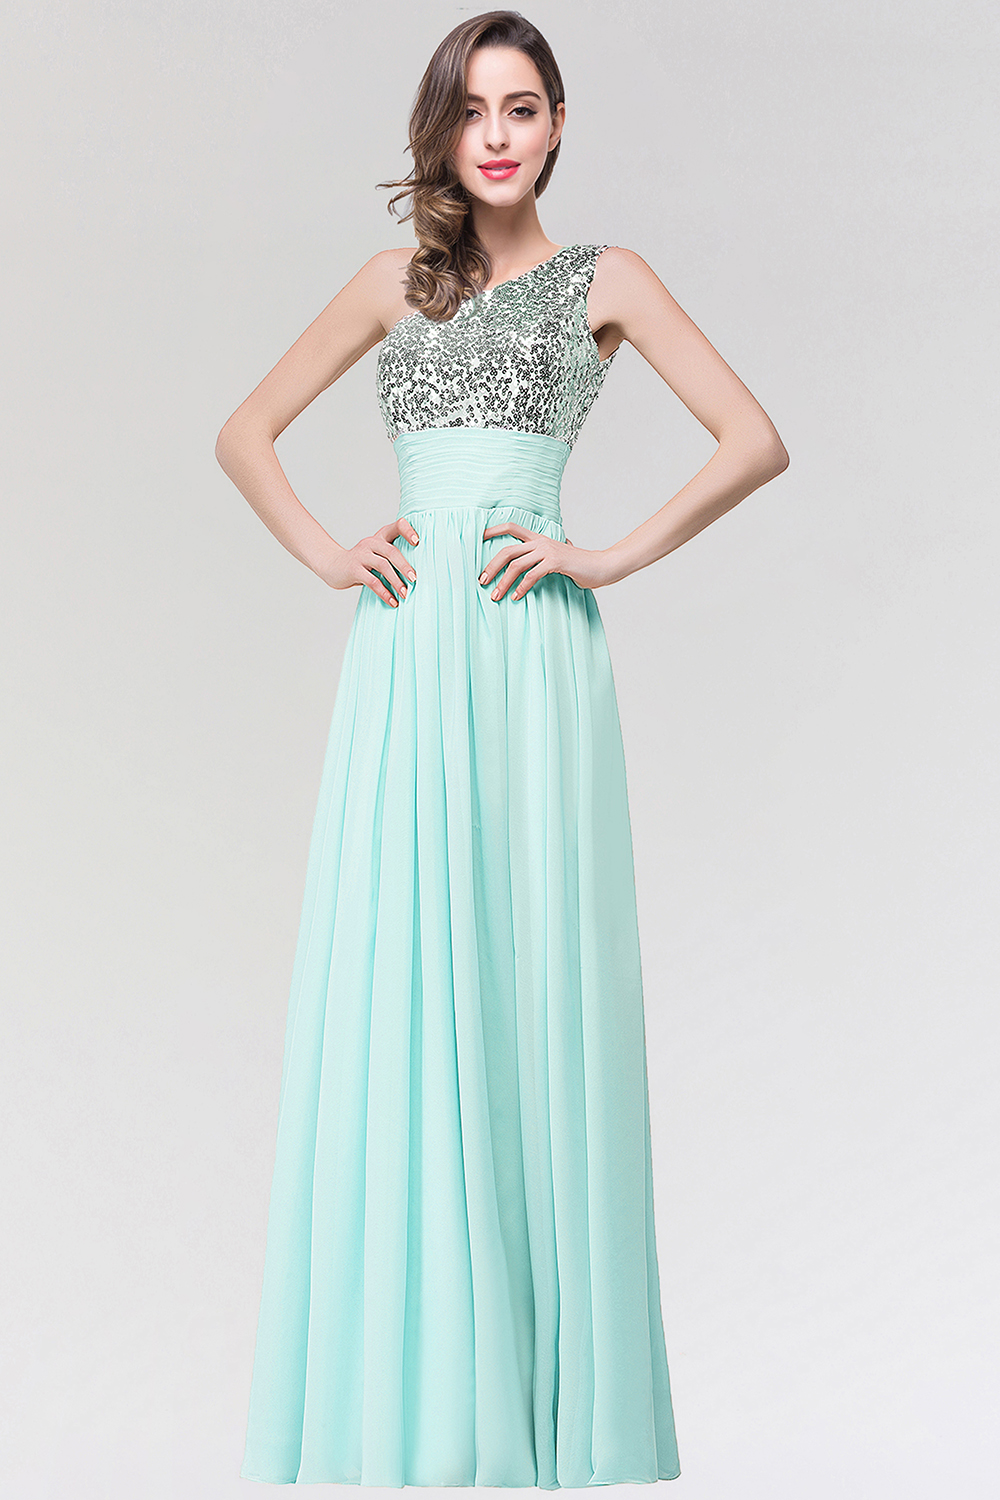 BMbridal Sparkly One-shoulder Ruffle Long Bridesmaid Dresses with Sequined Top